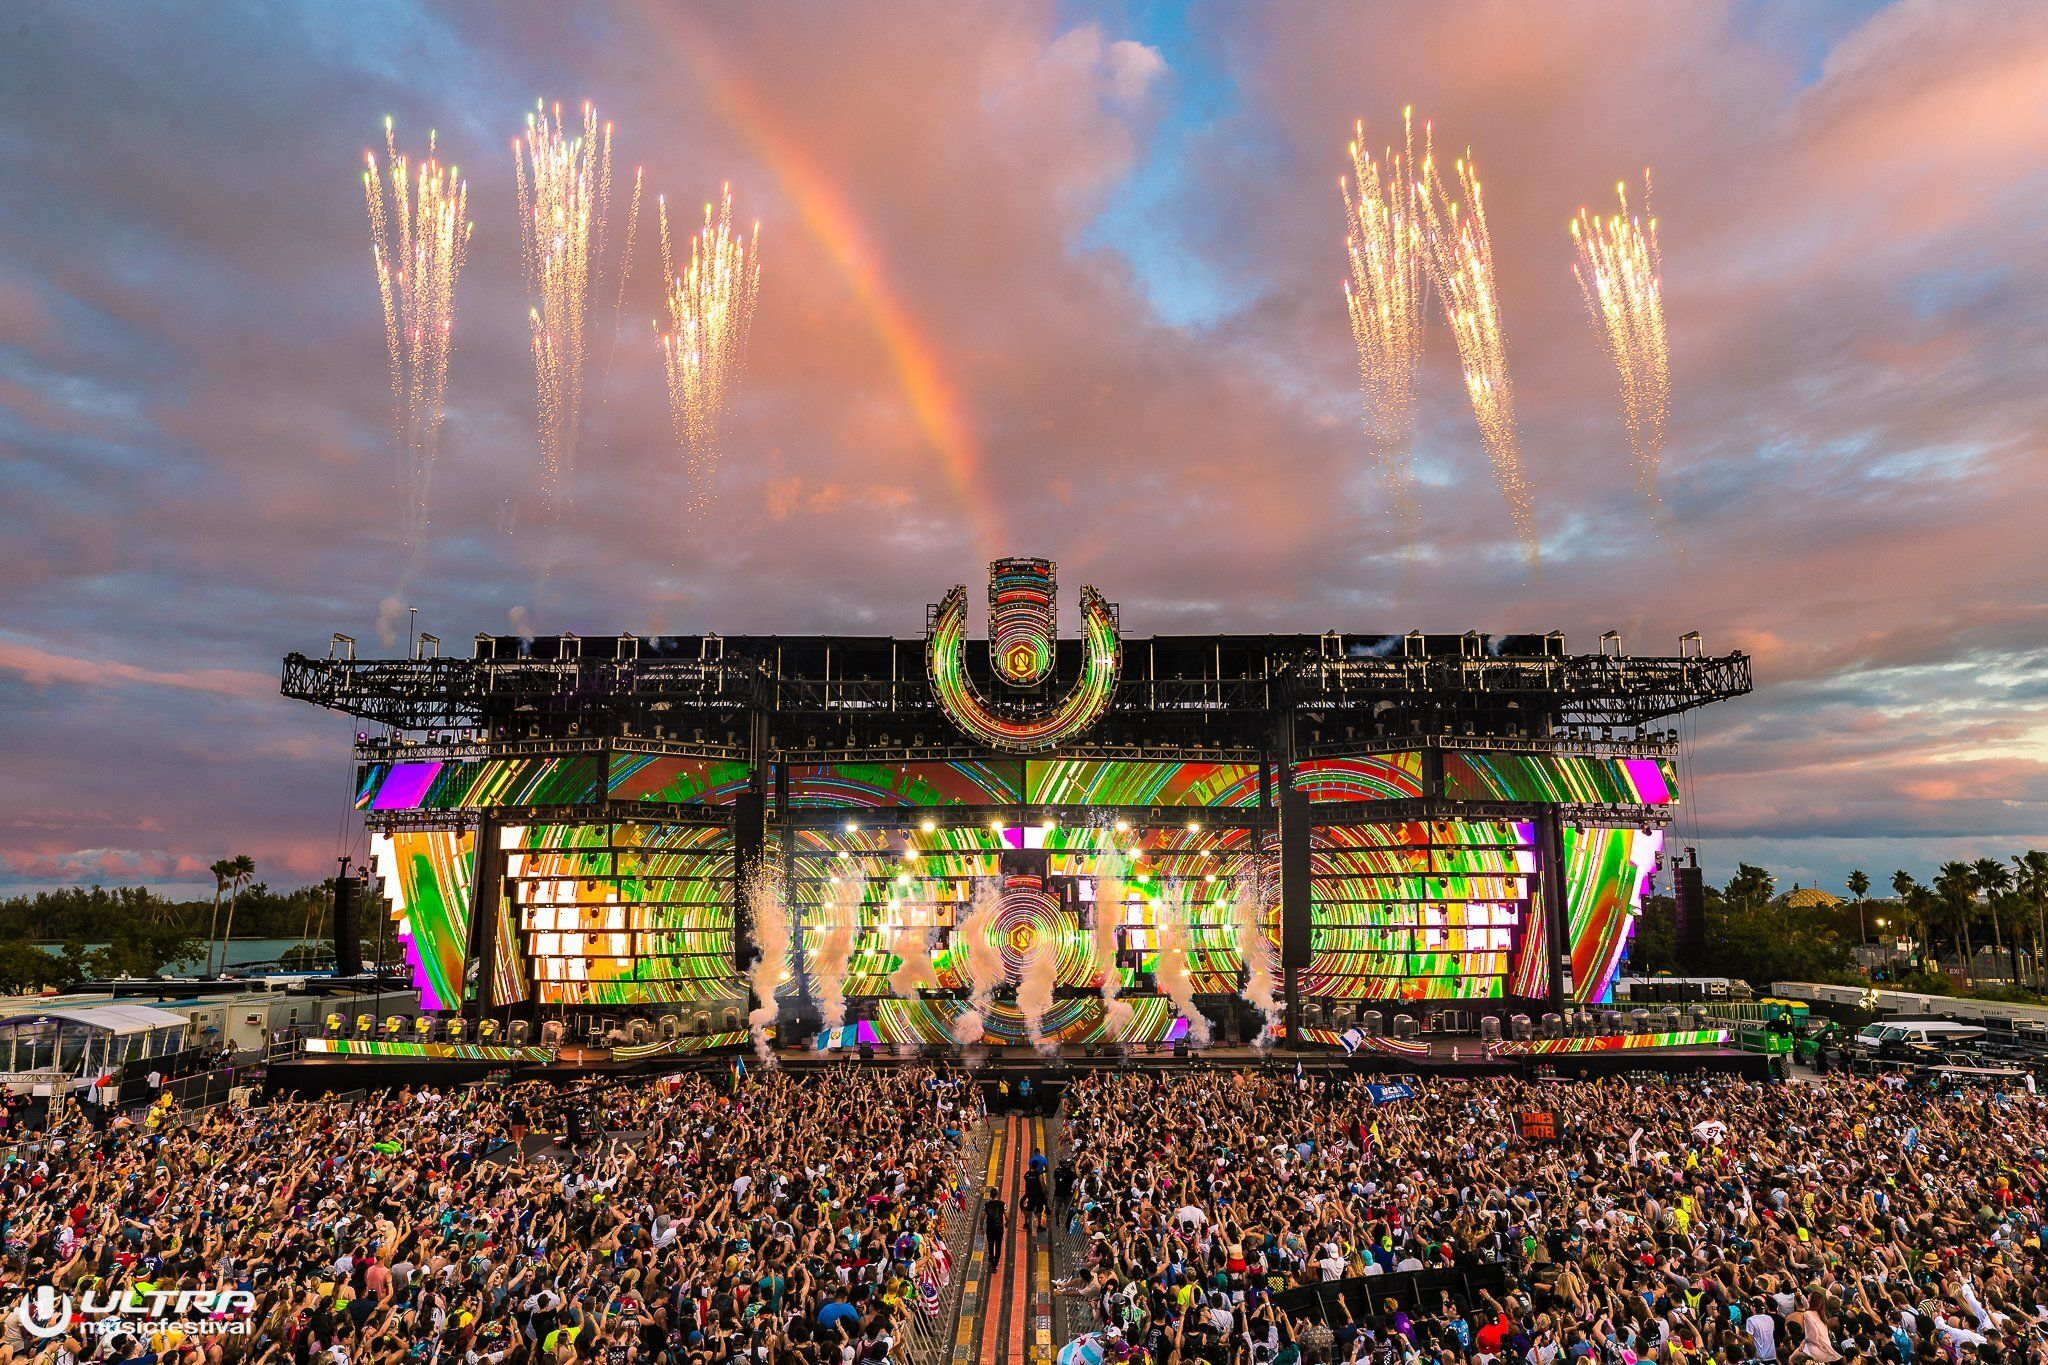 Halloween Festivals 2020 Edm Ultra Abu Dhabi 2020 has been cancelled in 2020 | Ultra music